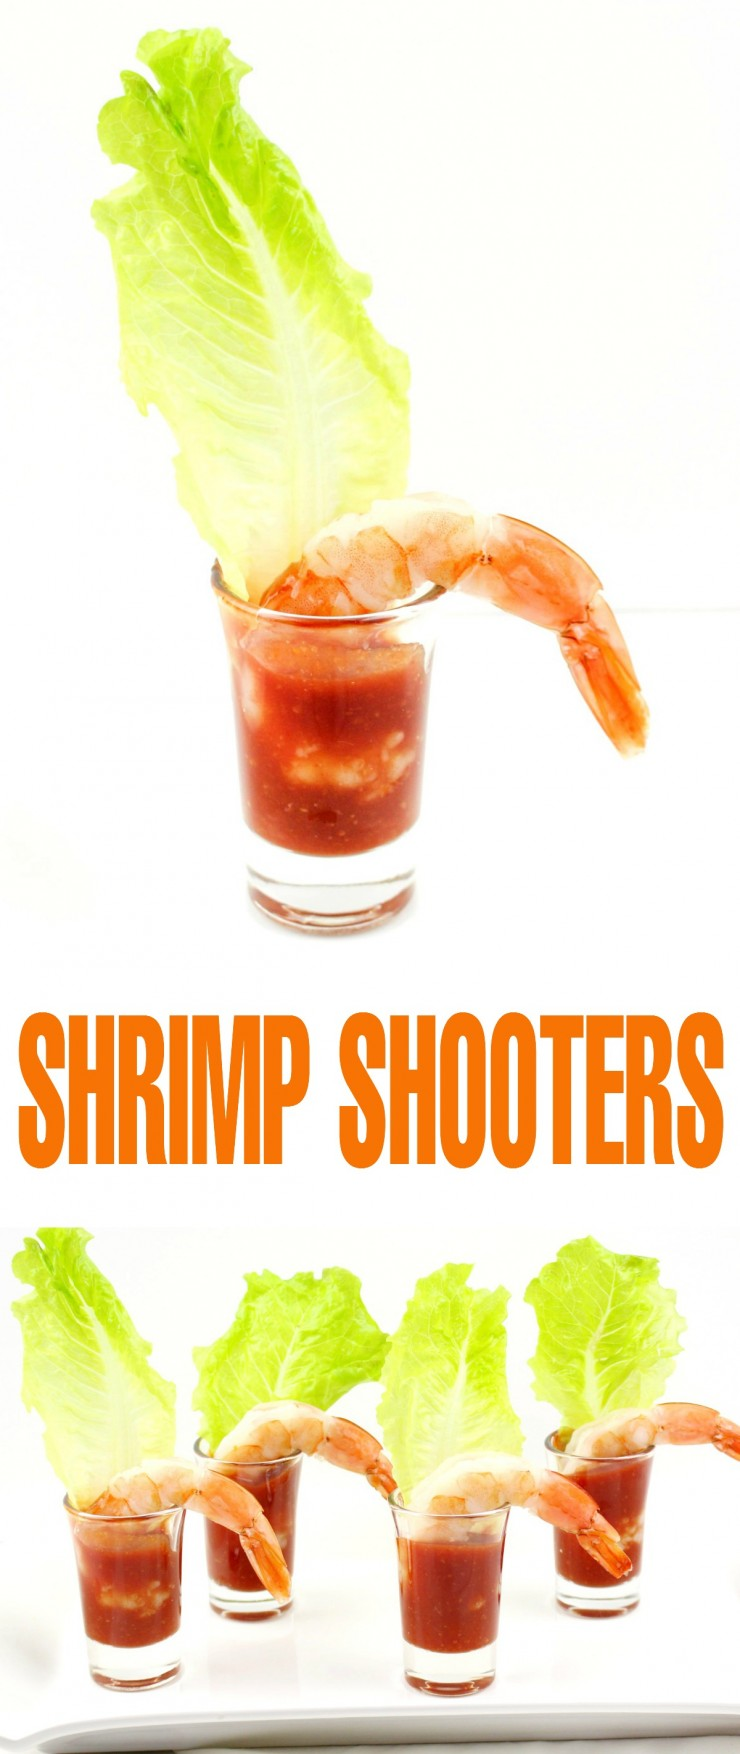 These easy shrimp shooters make for a simple to put together appetizer. Think single serve shrimp cocktails that are as easy to eat as they are to prep.